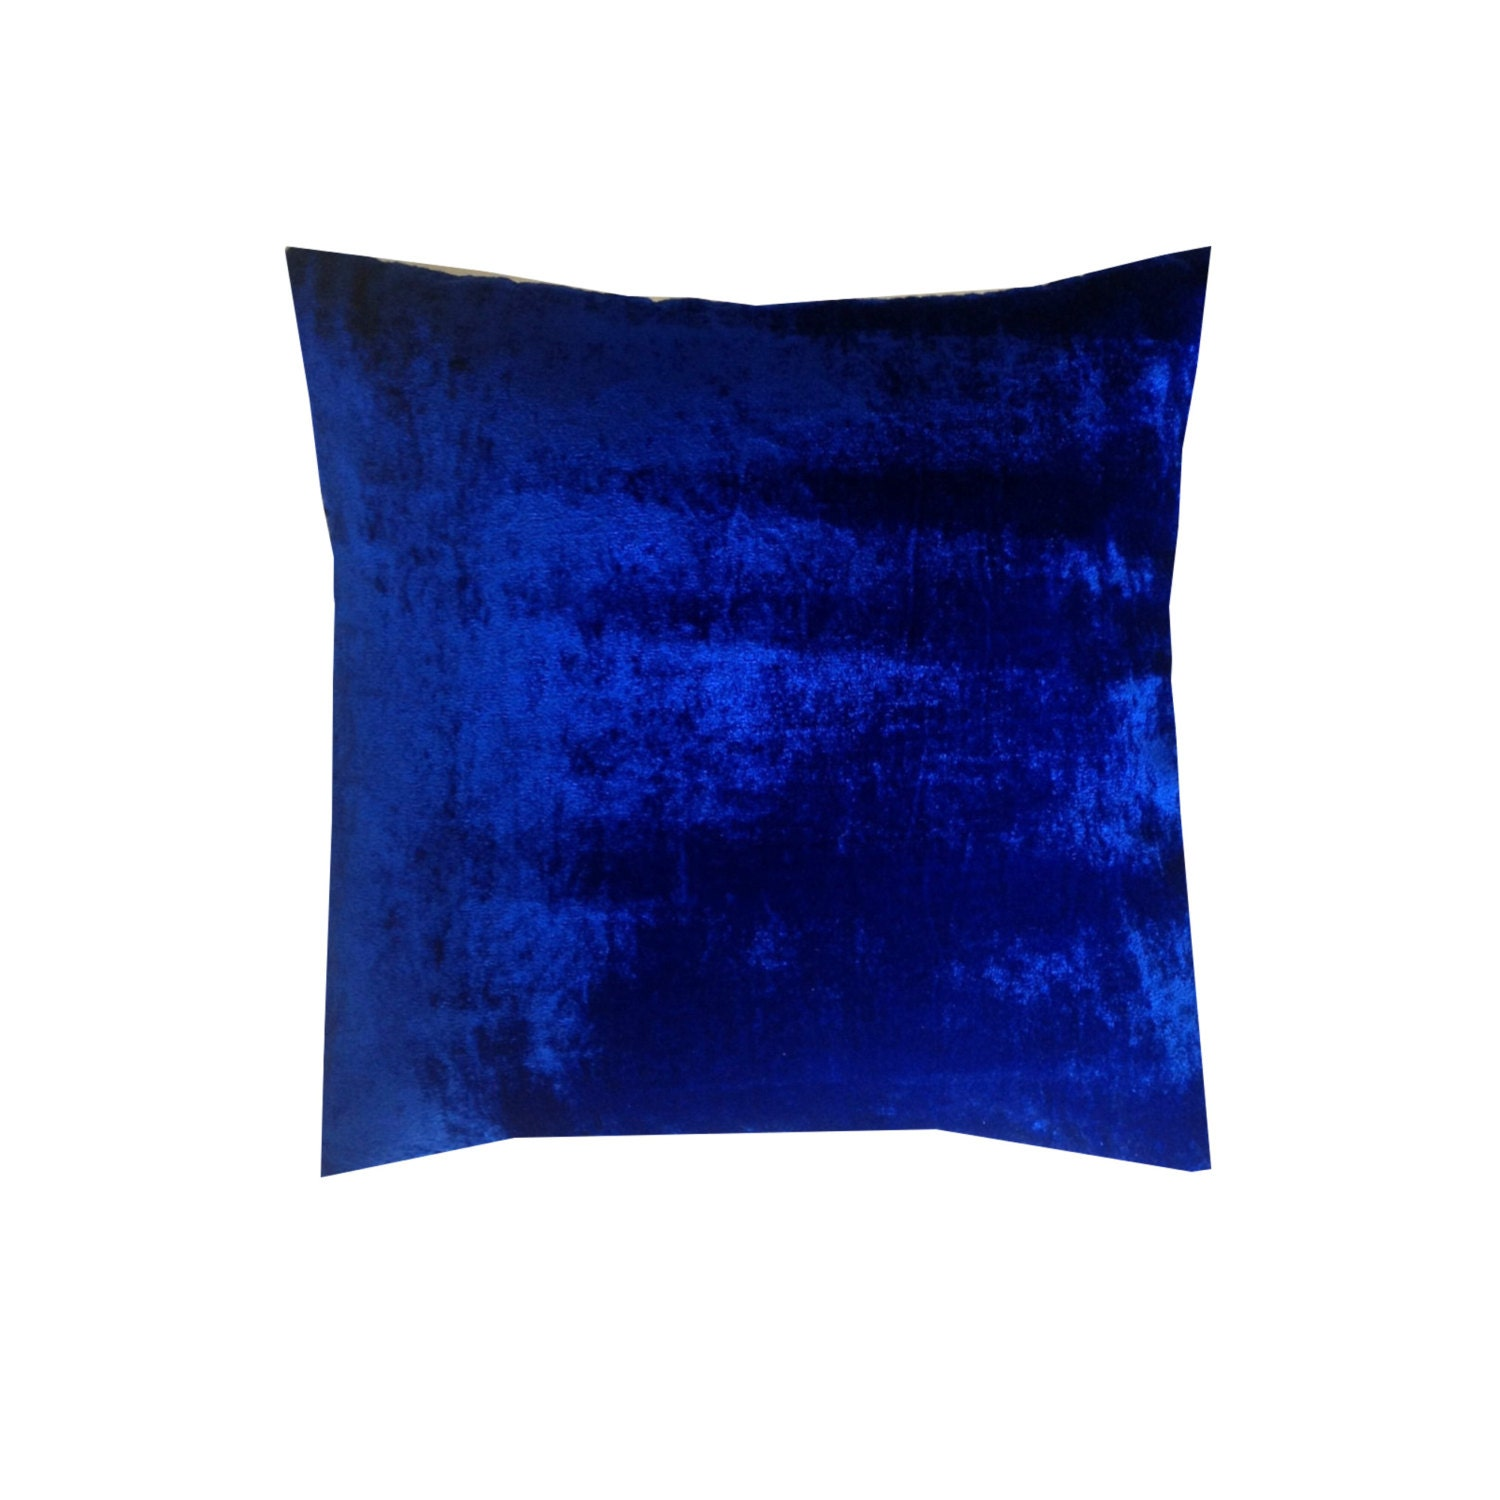 Decorative Pillows For Blue Couch : Blue Velvet Pillows Blue Decorative Pillows Velvet sofa